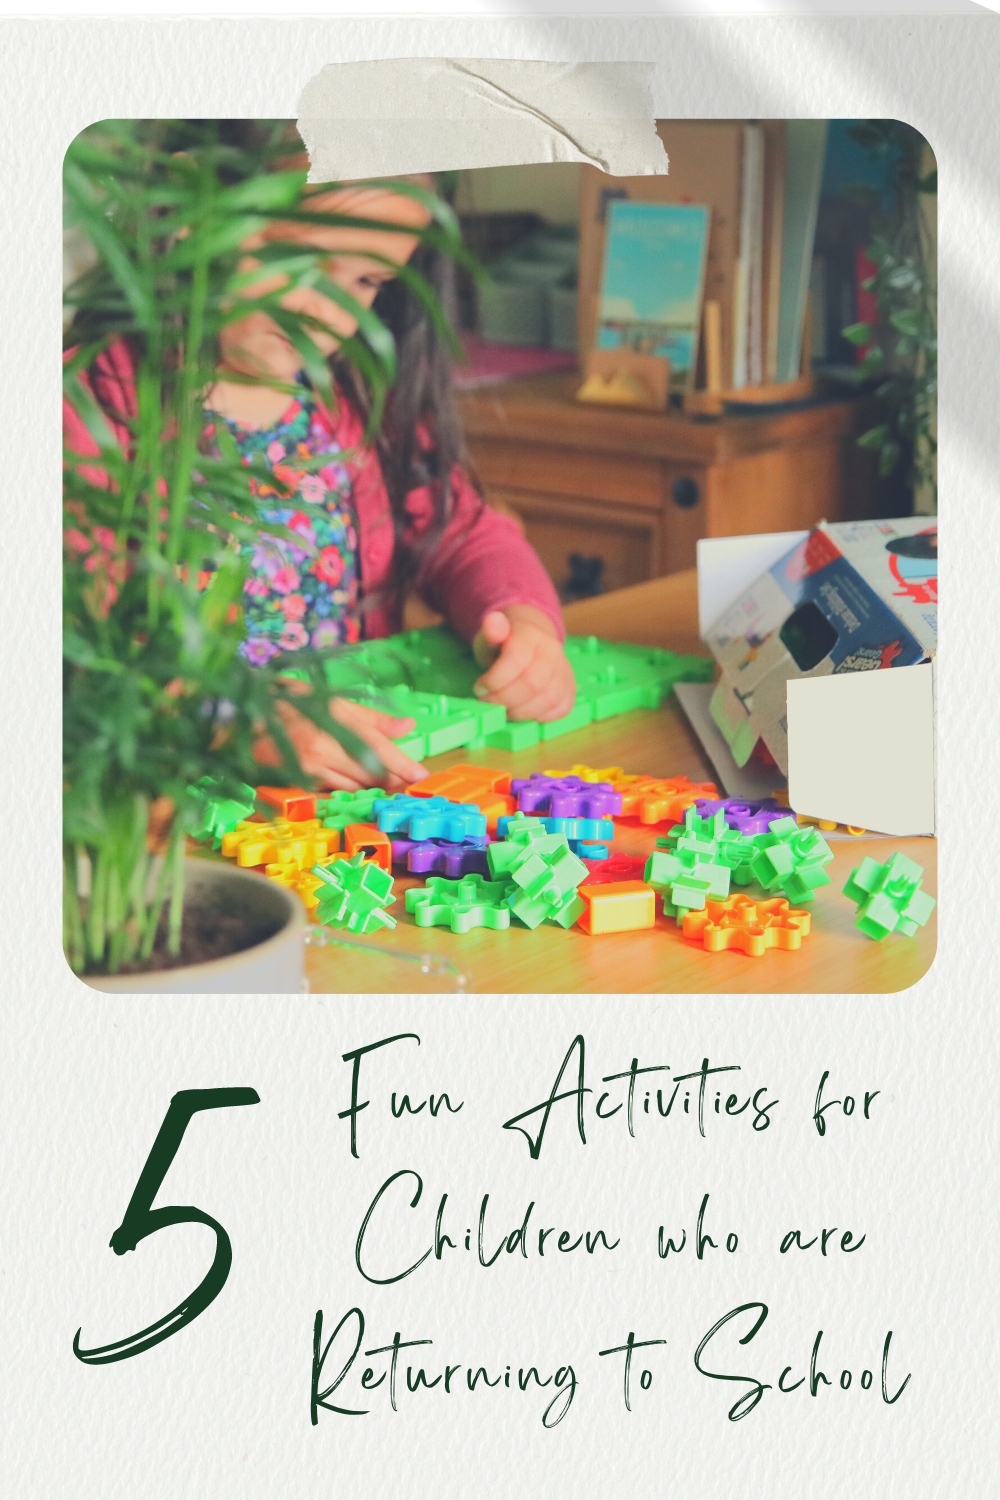 Fun Activities for Children who are Returning to School